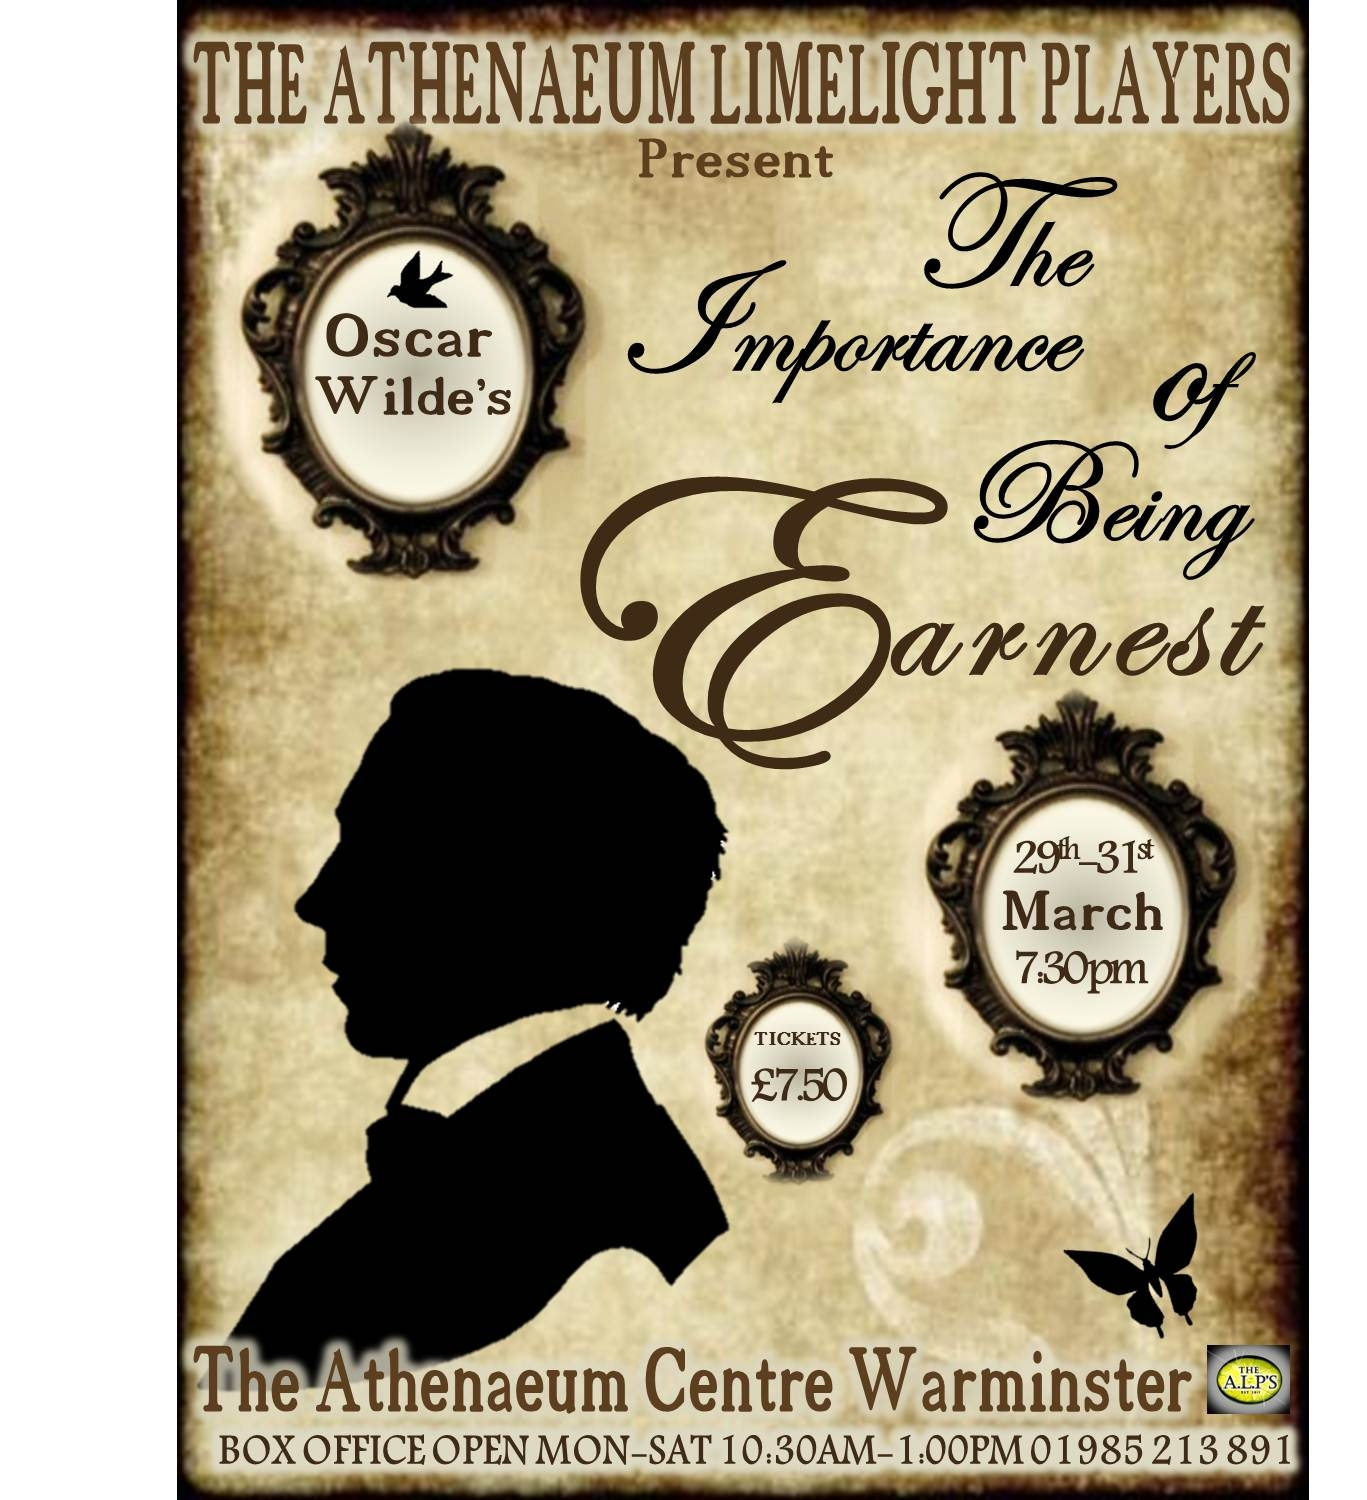 introduction to the importance of being earnest by oscar wilde analysis